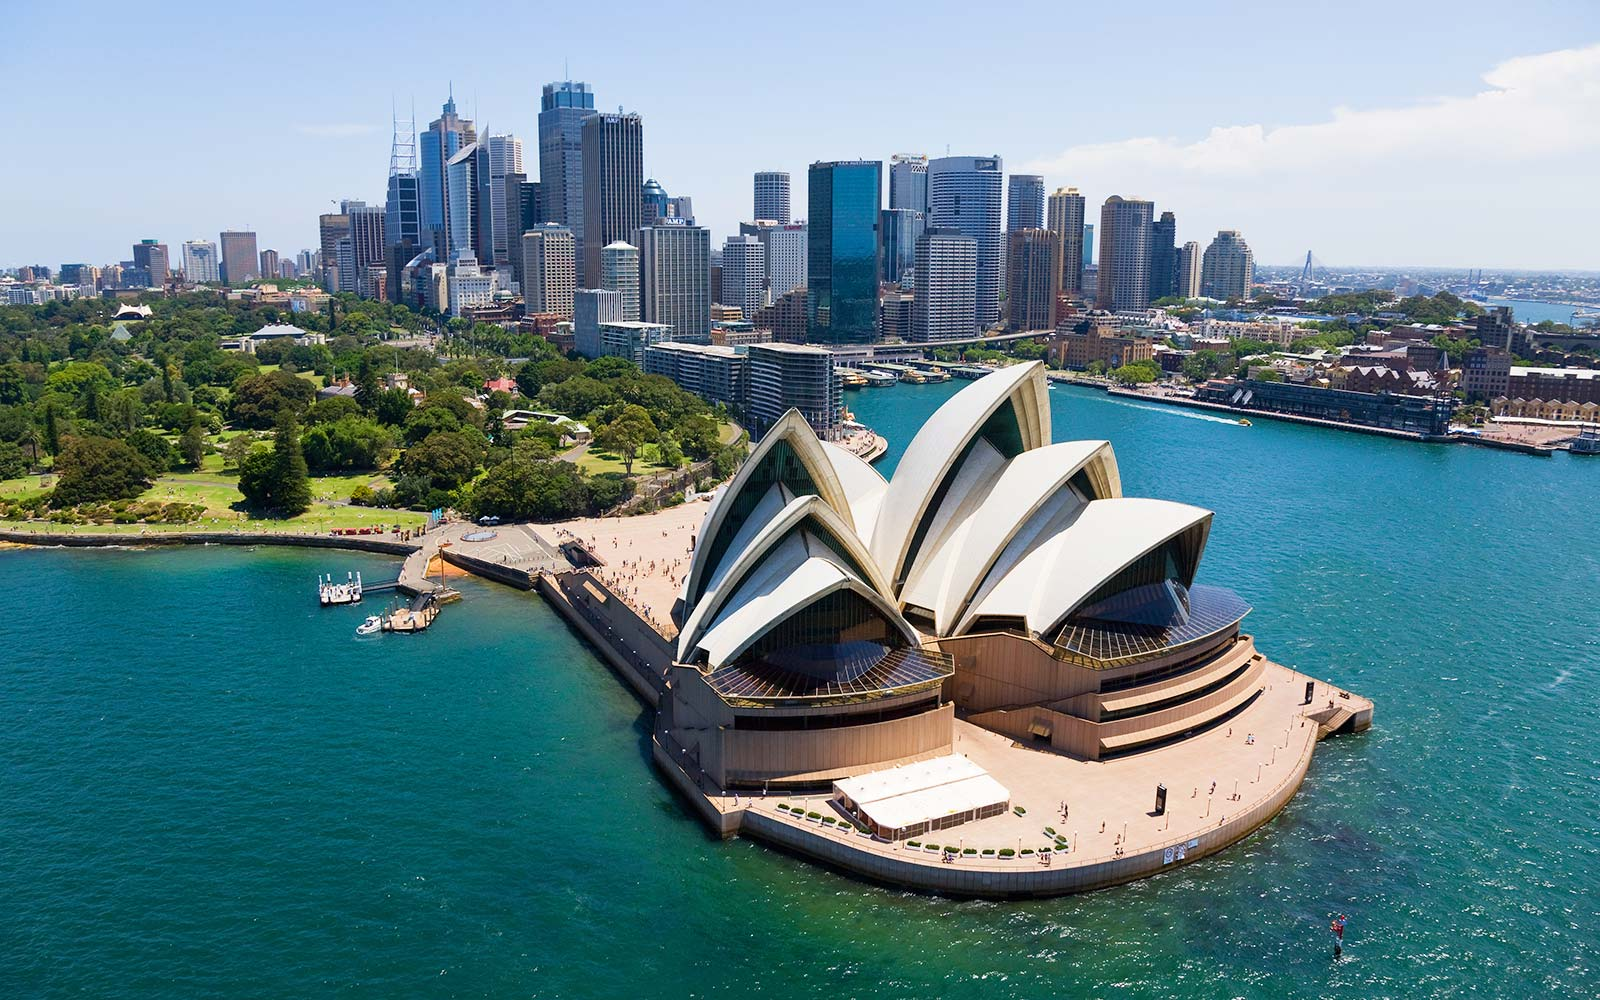 You Can Win a Free Trip to Australia If Your Name is Sydney